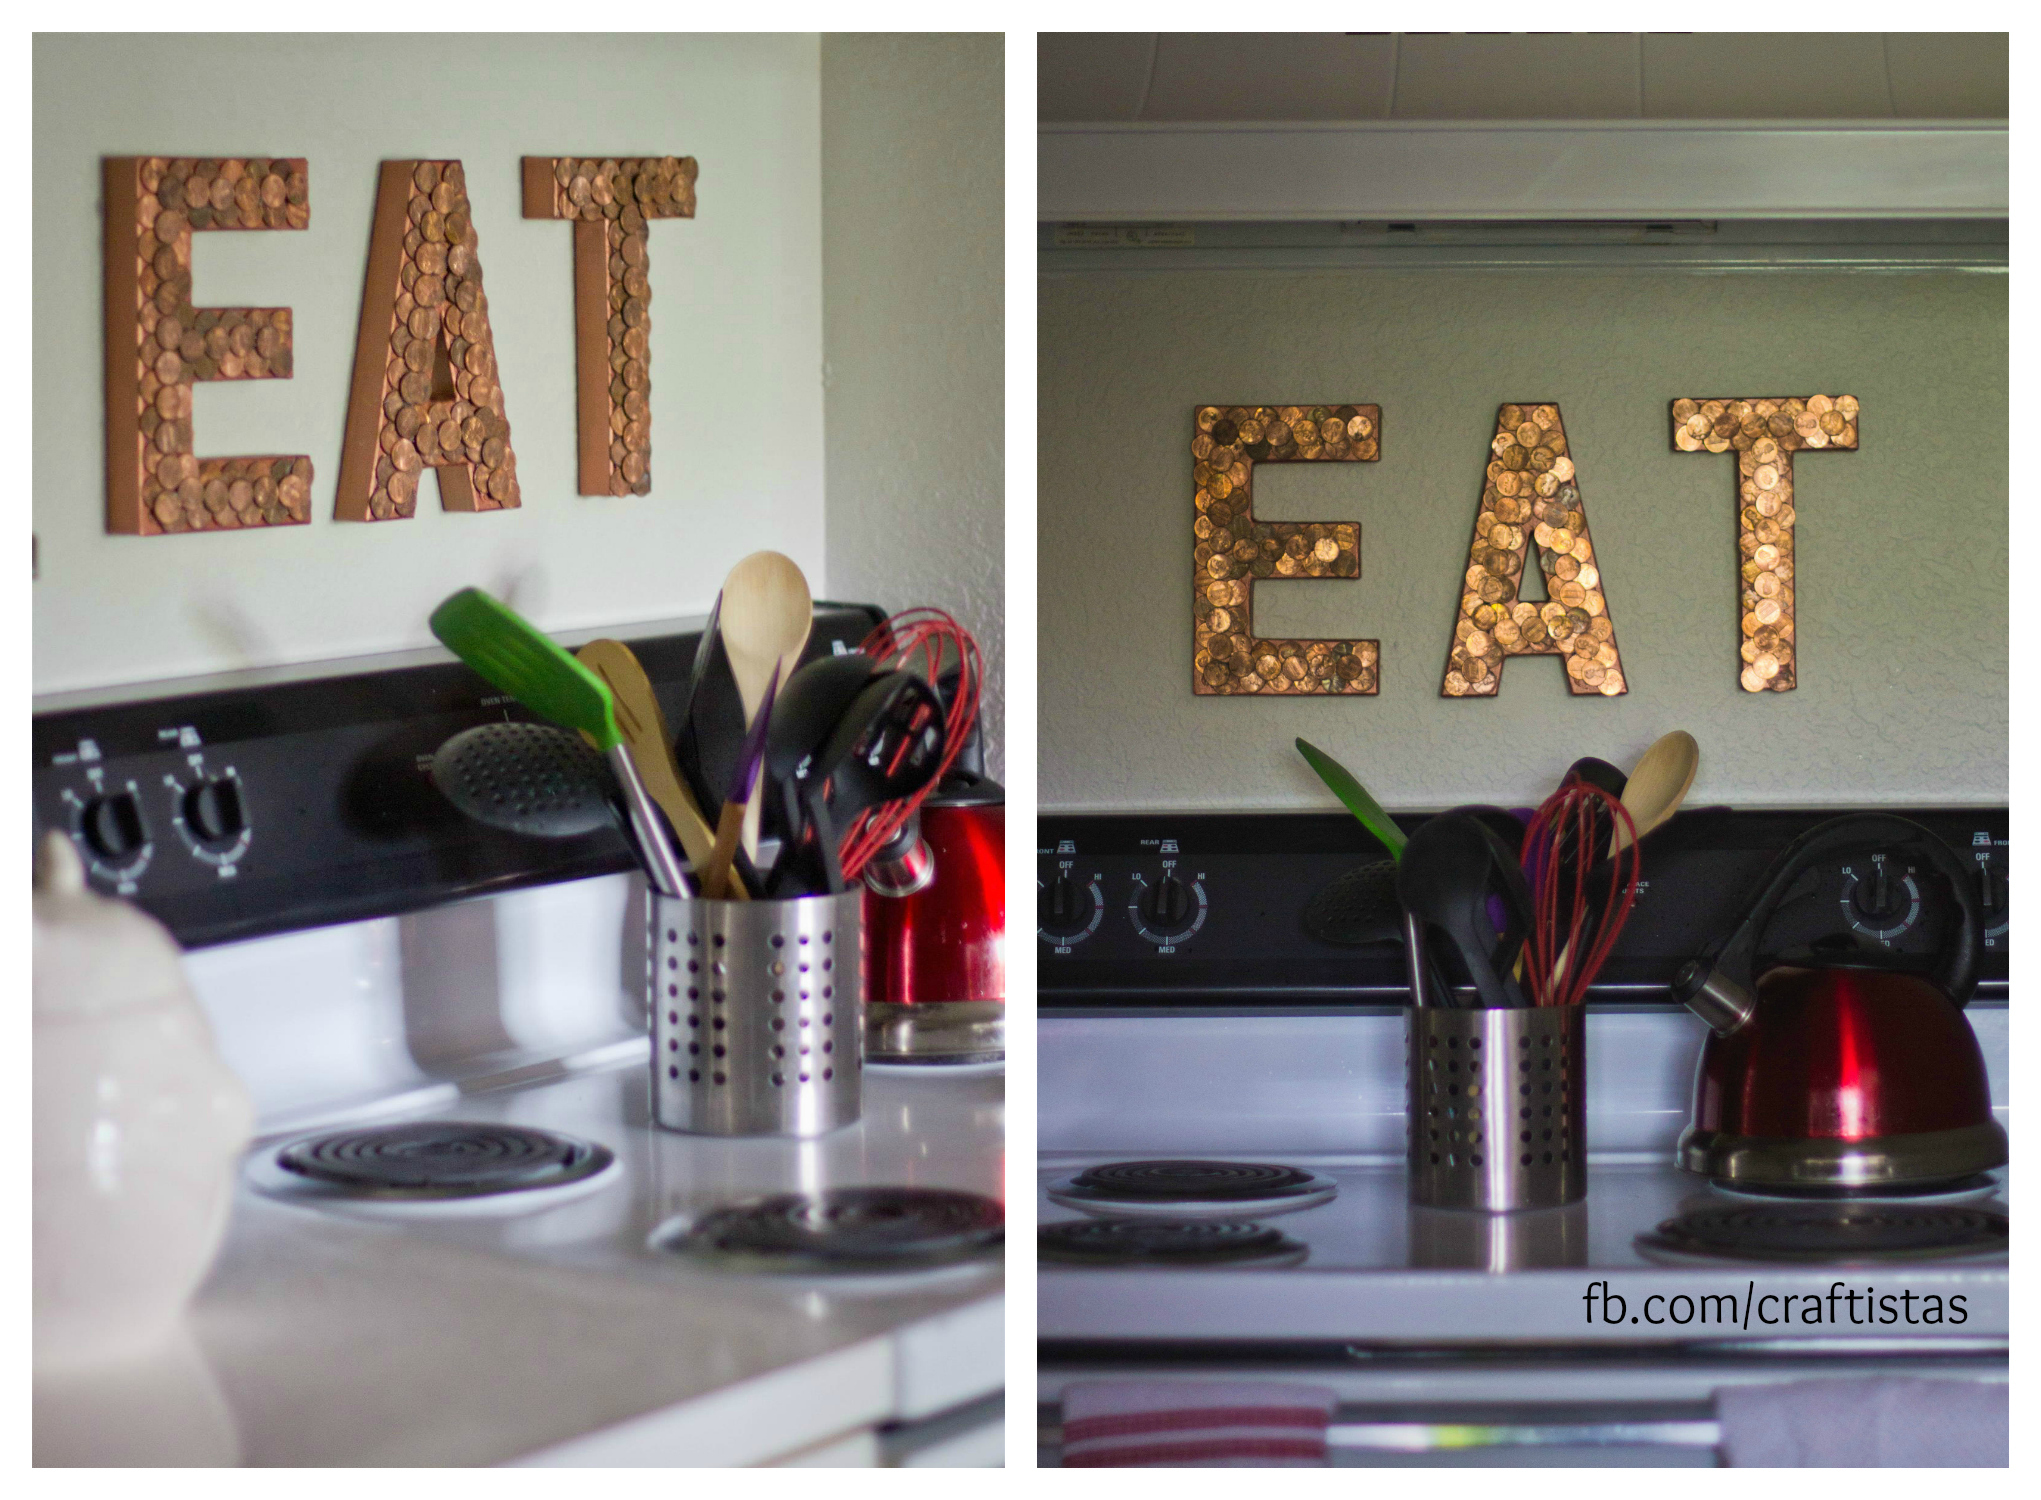 Weekend diy crafting roundup craftistas for Home decor kitchen